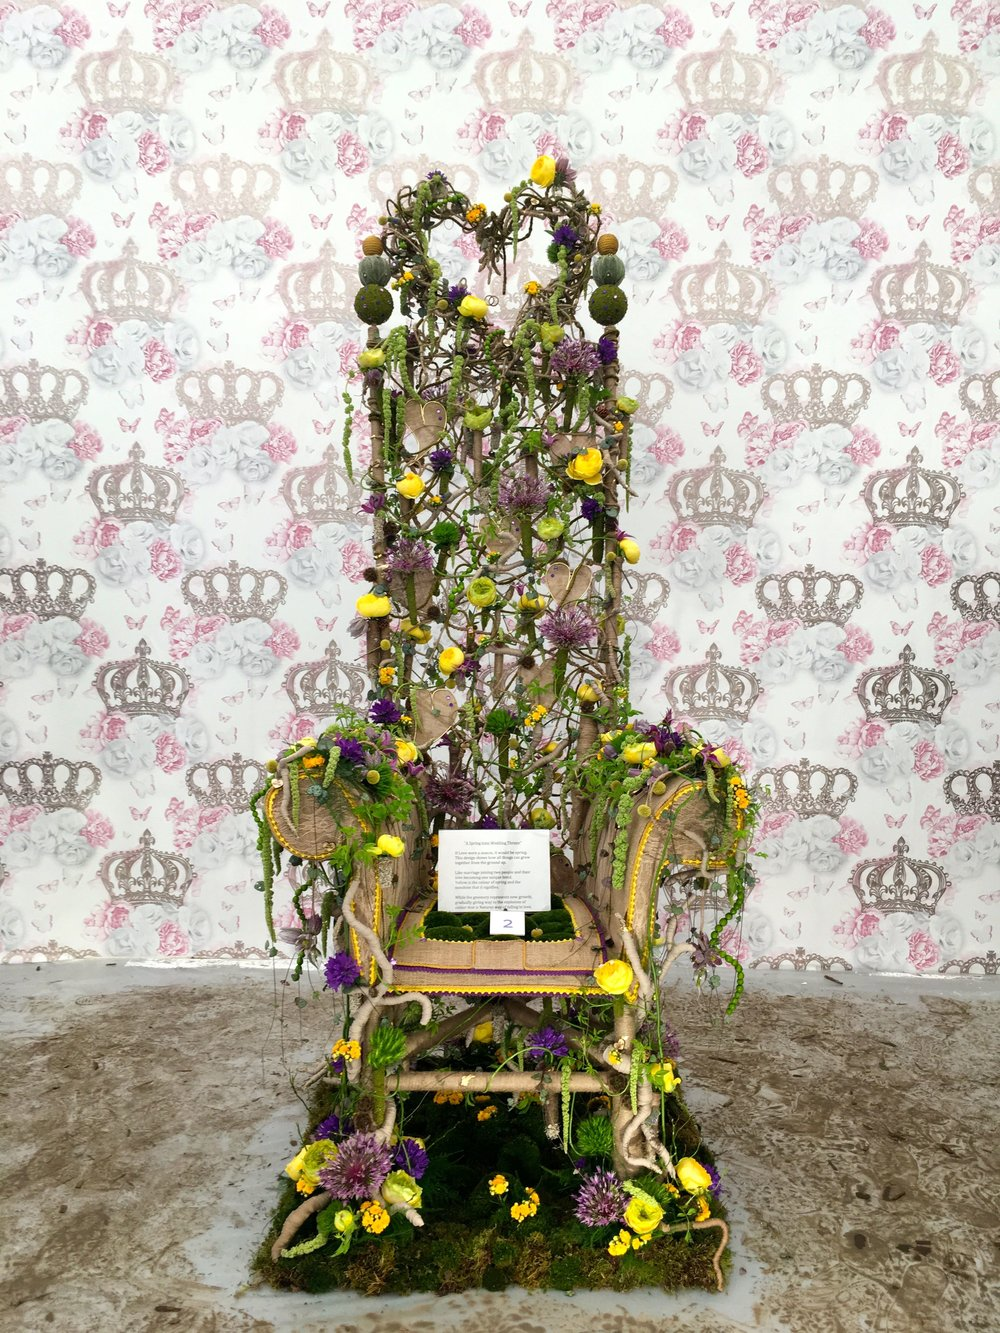 hearts and crowns on this floral throne from RHS Chelsea 2018